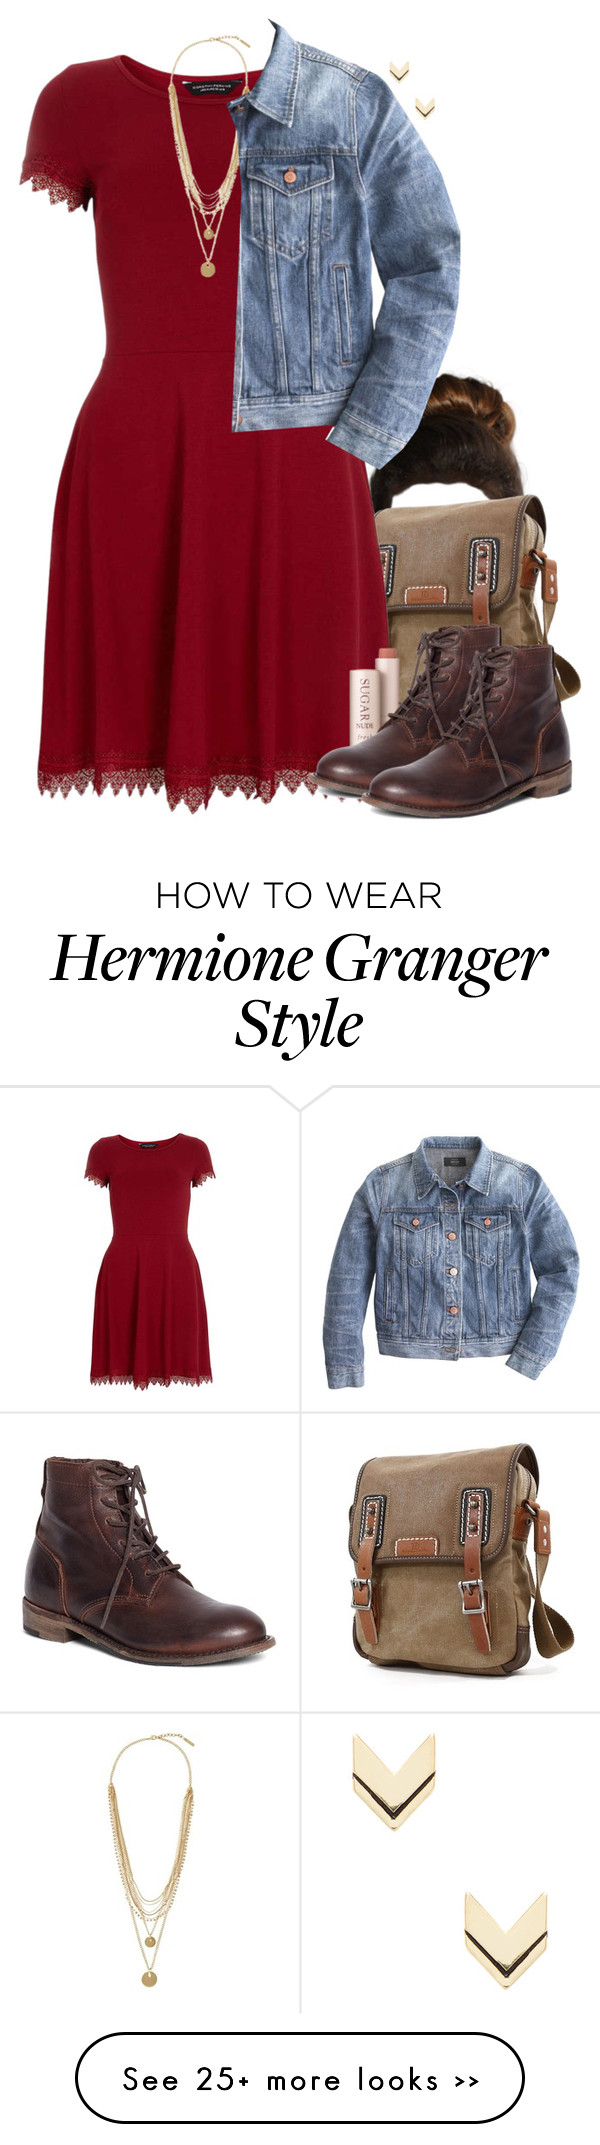 """""""hermione granger inspired house party outfit""""hpstyle"""